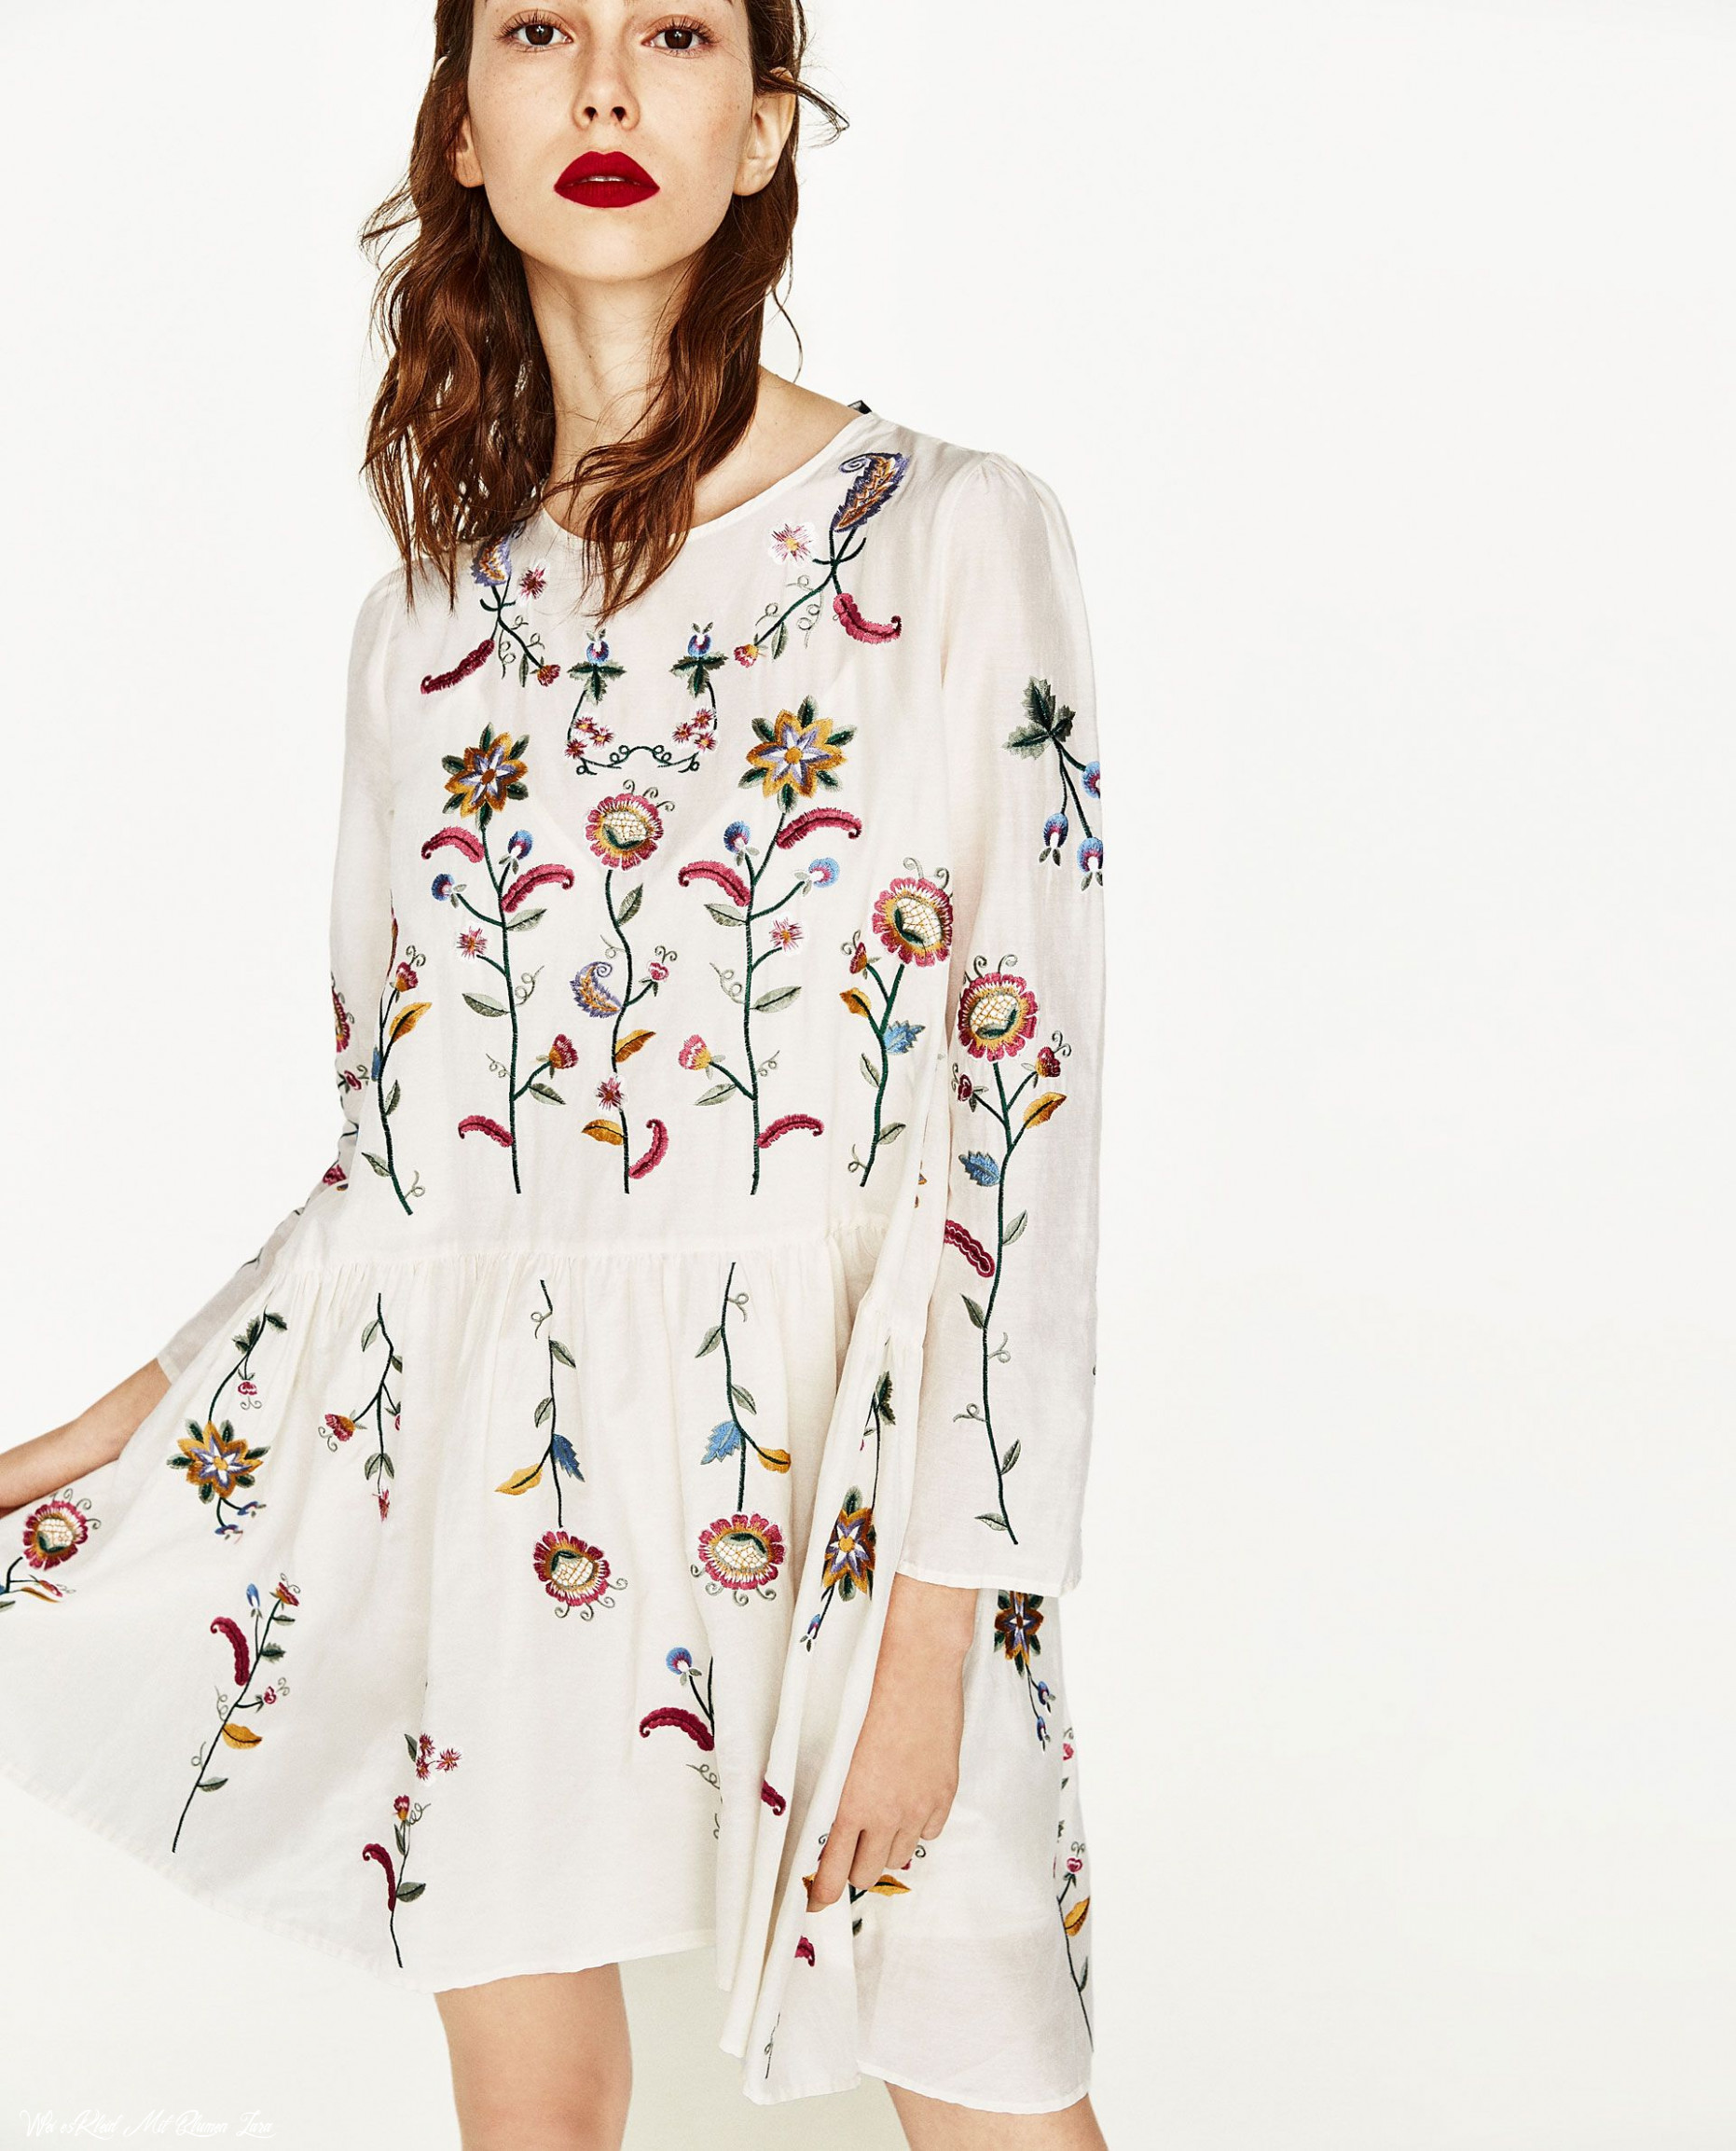 silk dress with flowers embroidery boho kleidung, weißes kleid